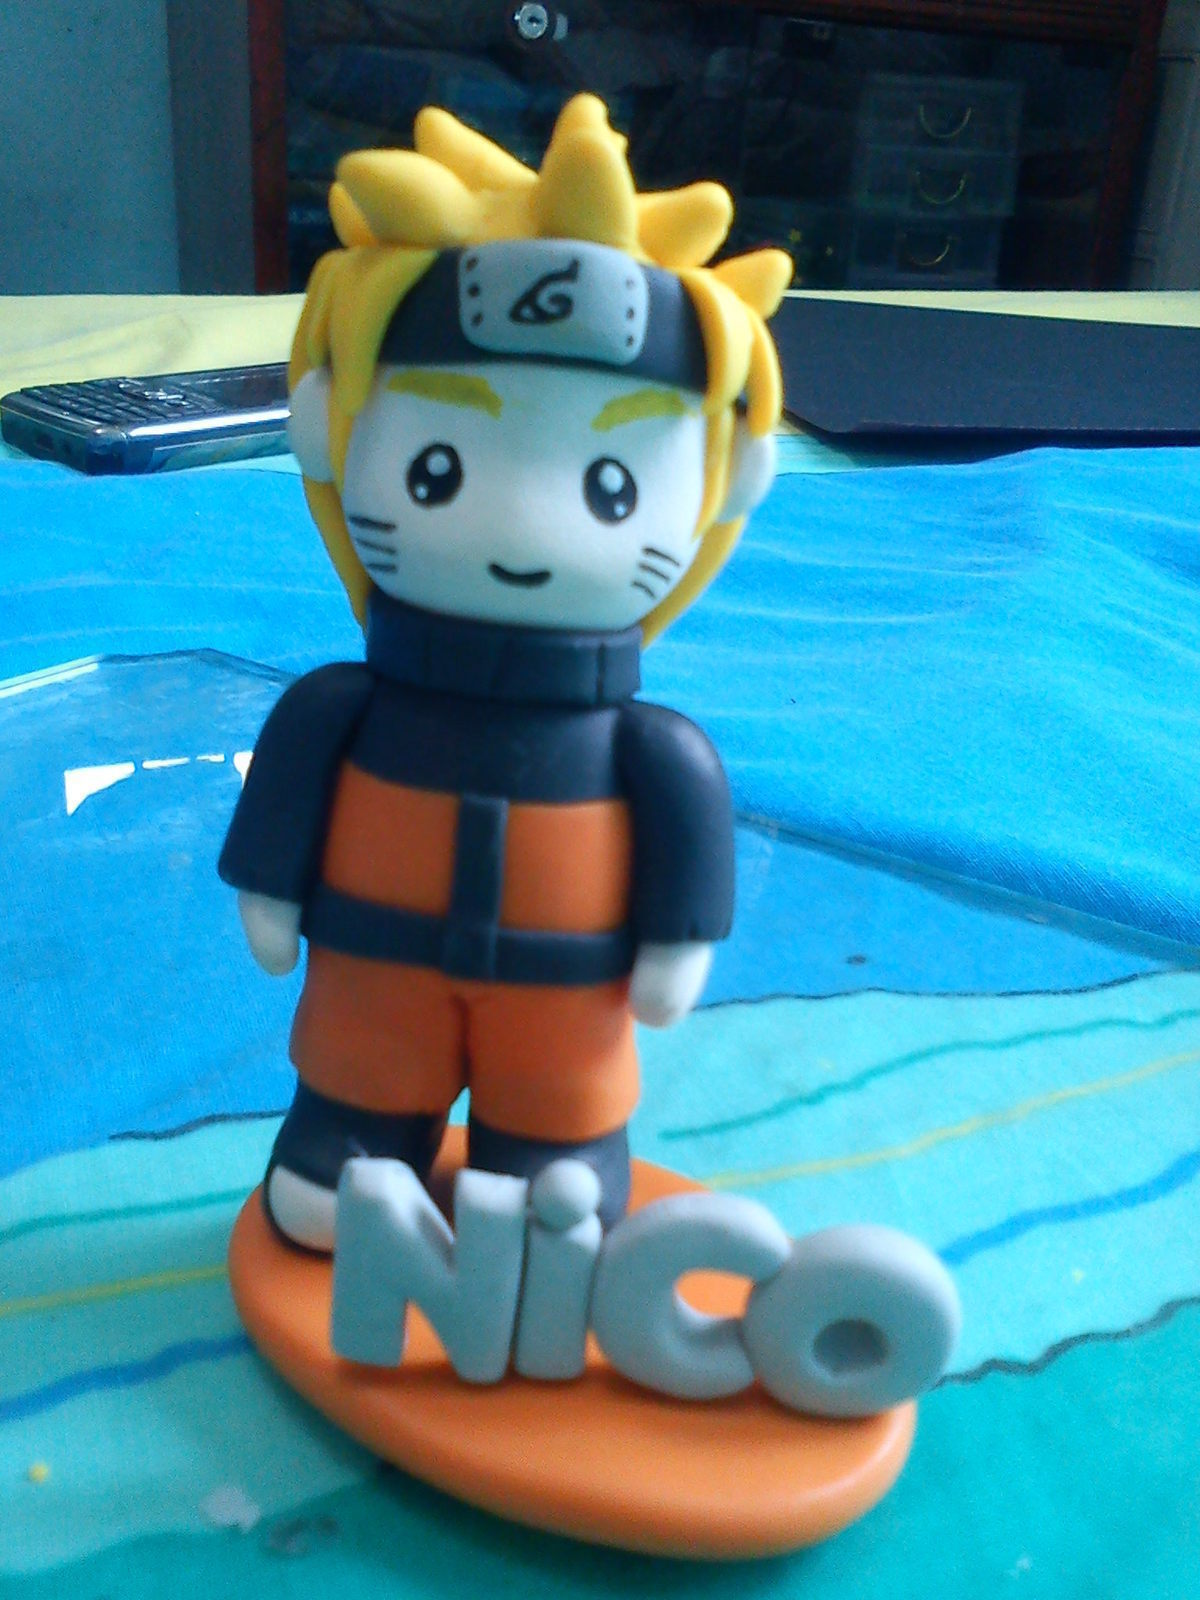 Chibi Naruto Fig A Clay Character Art On Cut Out